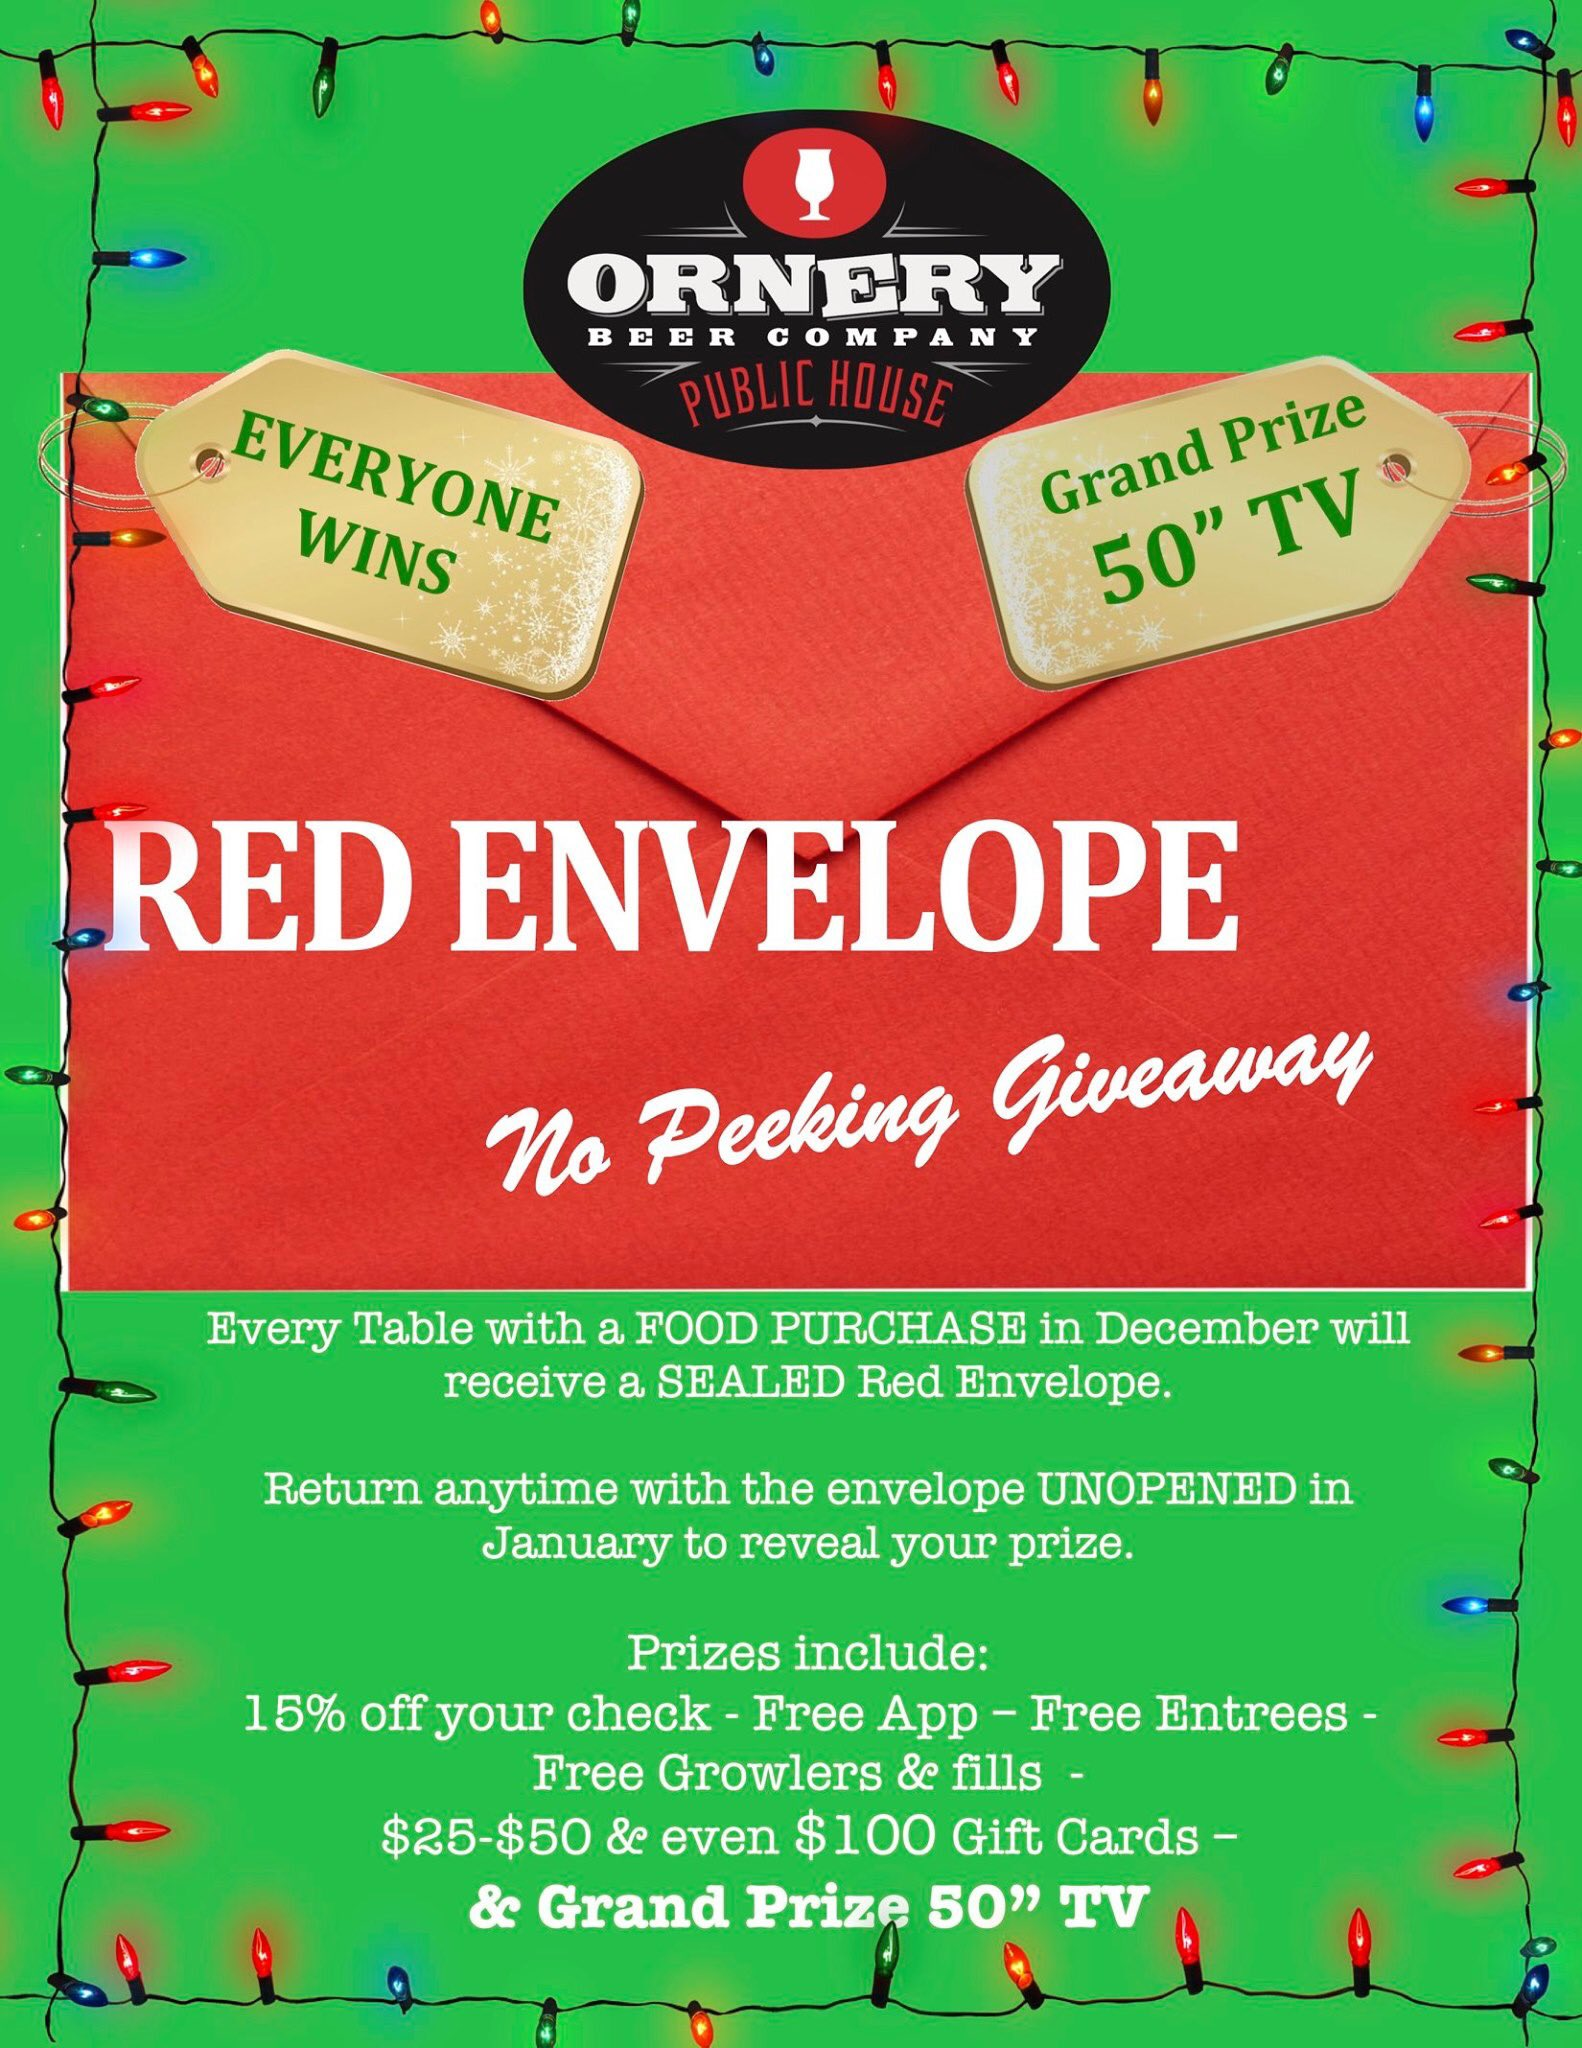 Ornery Beer Company On Twitter Visit The Fairfax Ornery Public